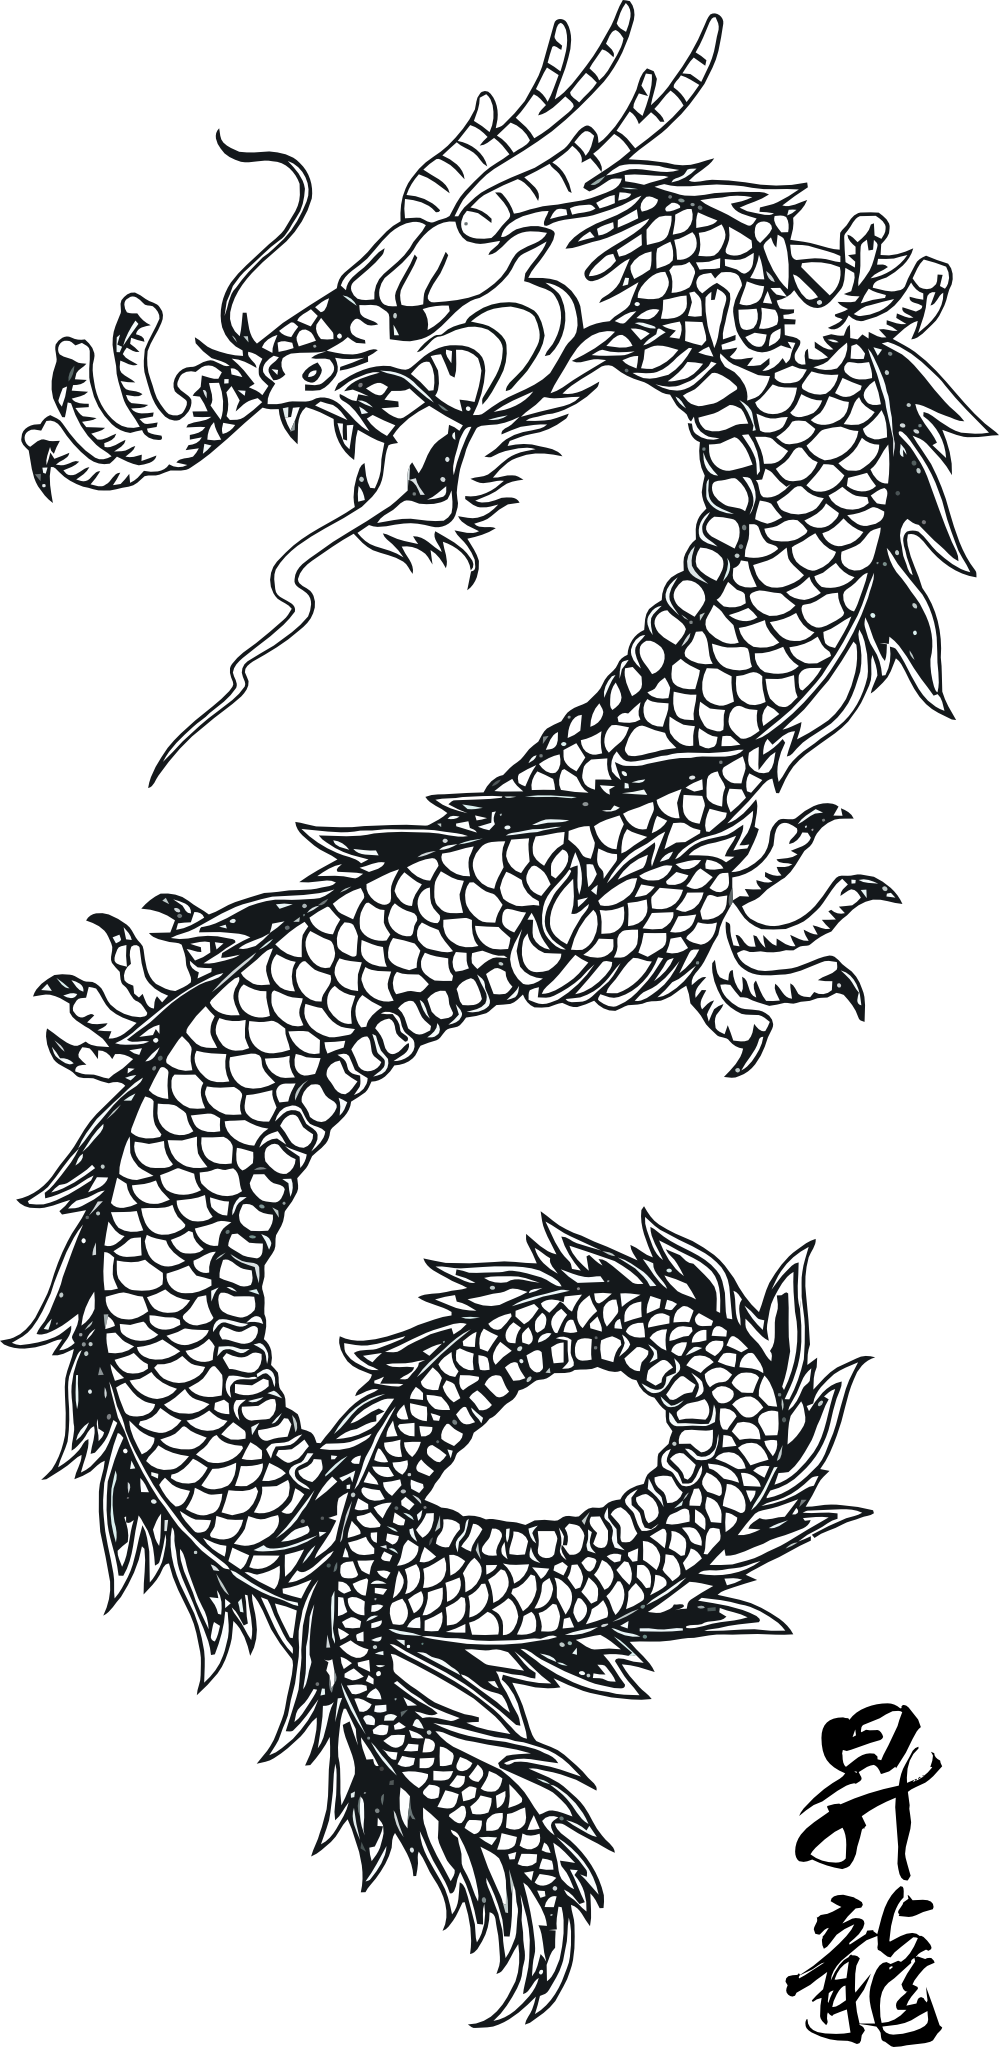 Line Drawing Year : Line art traditional chinese dragon scales and pattern